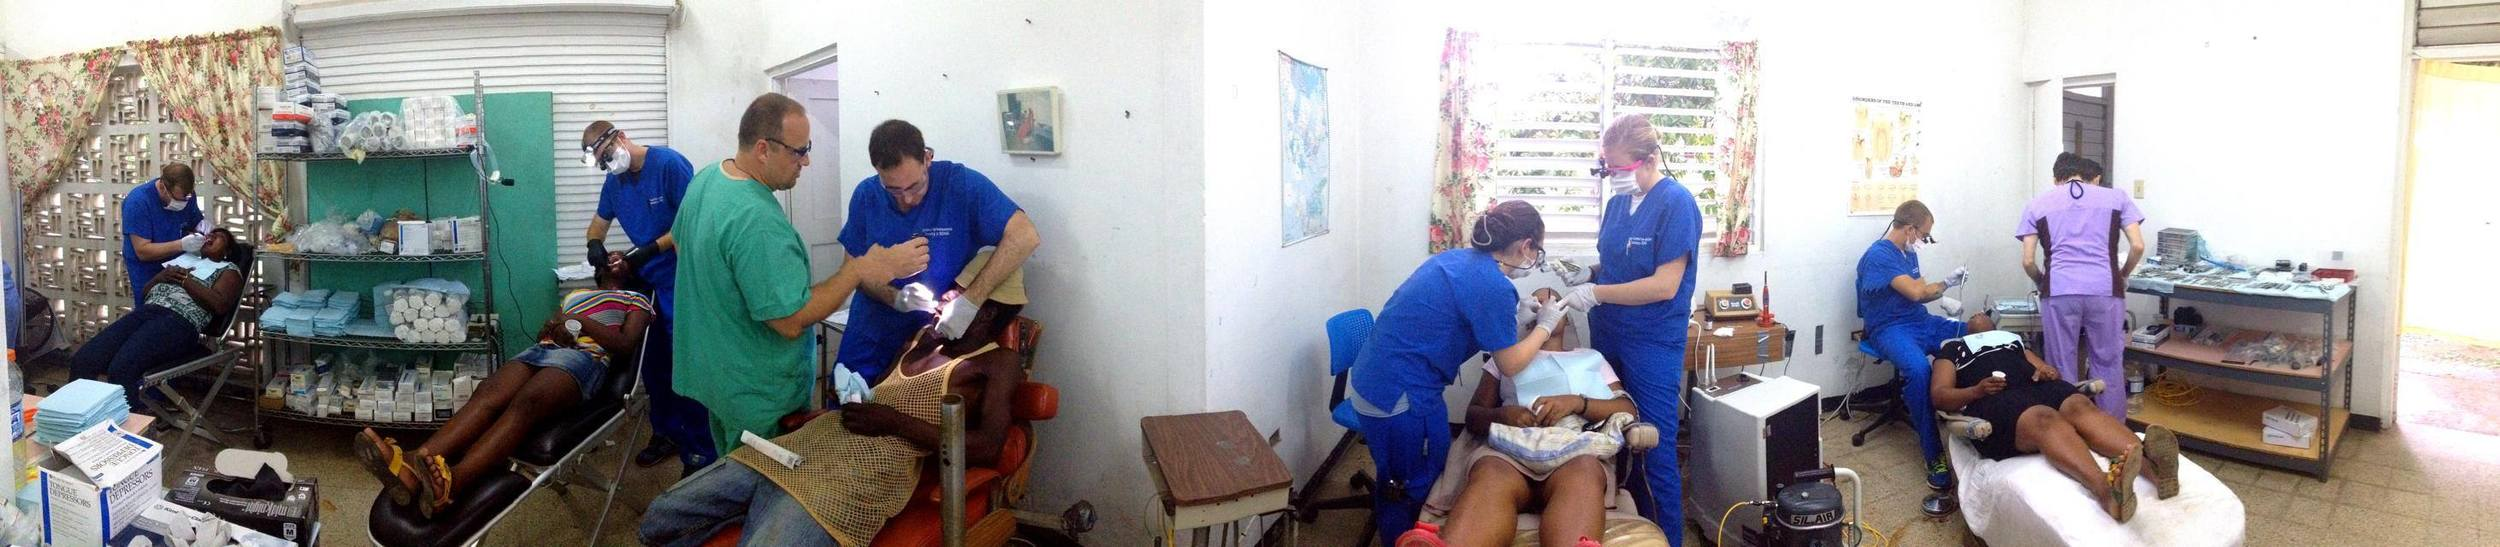 Pano of Group 2 working inside Long Pond Clinic